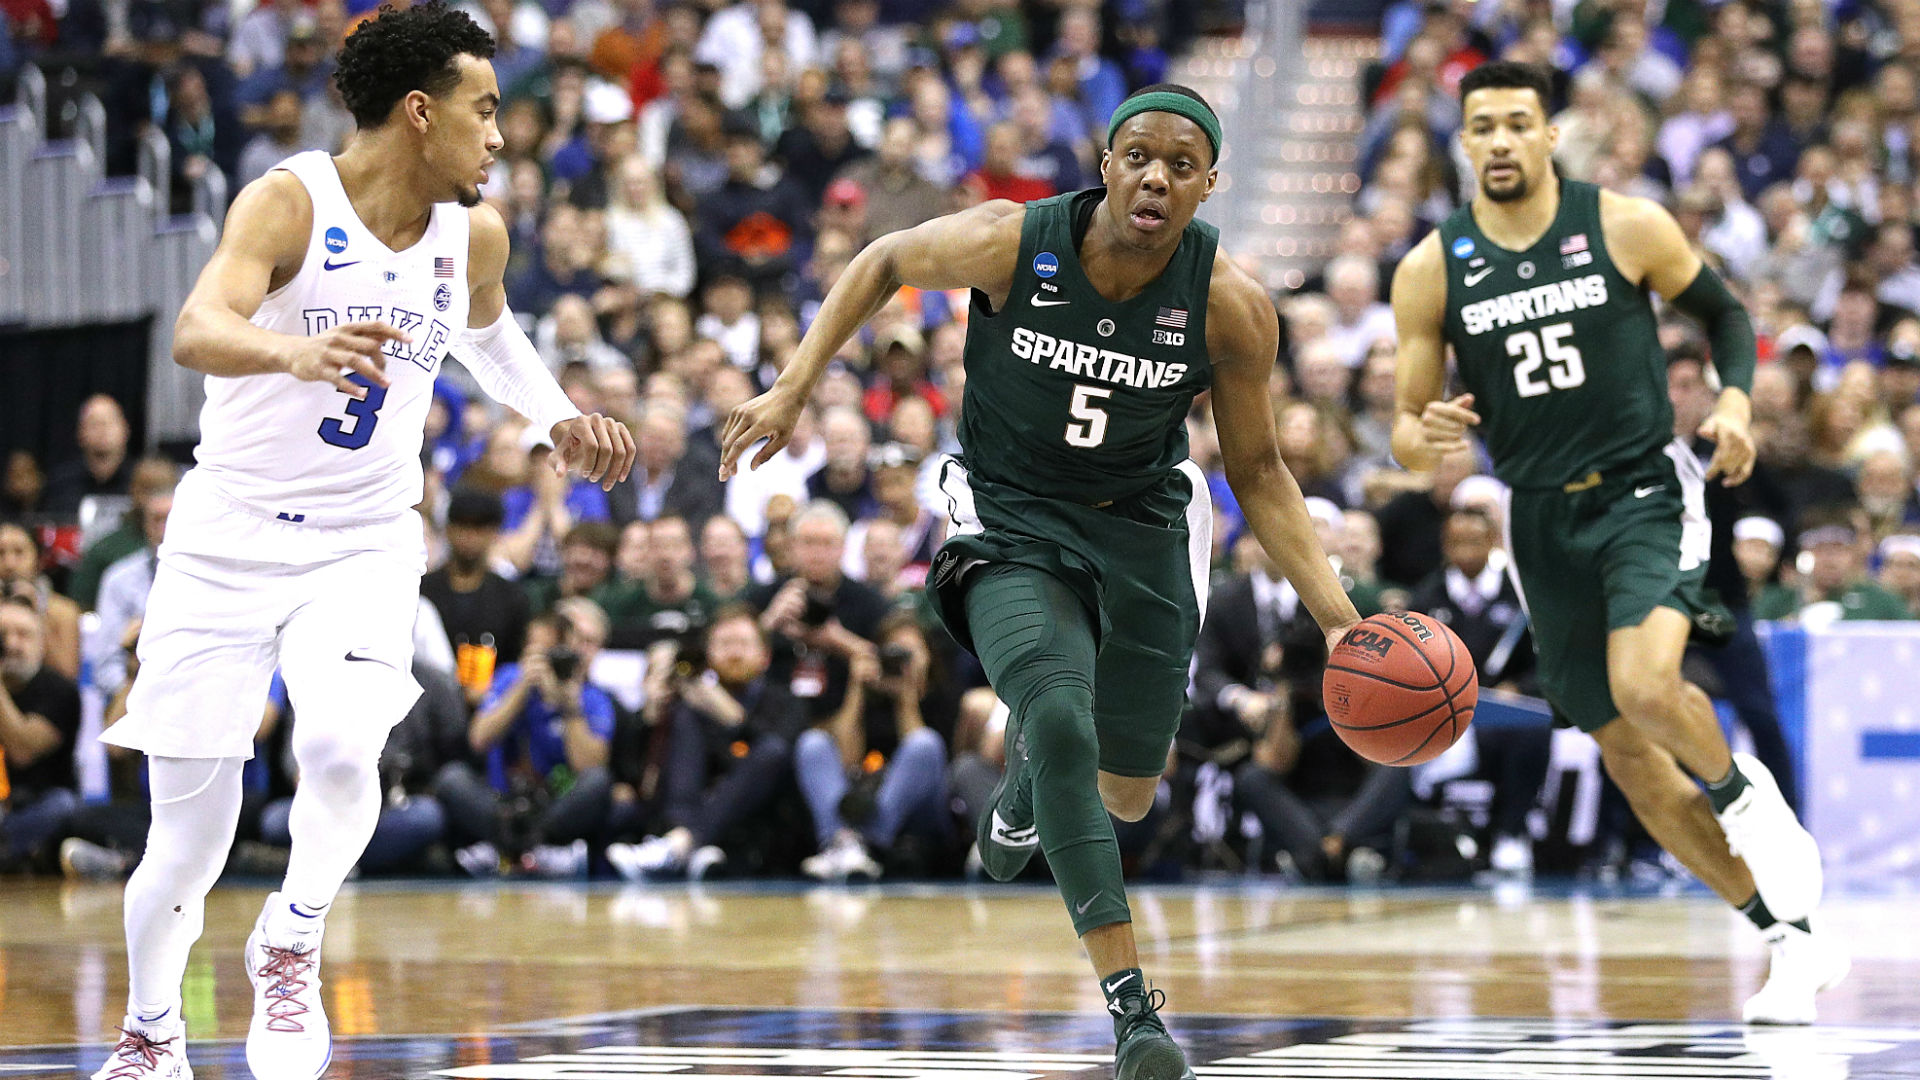 March Madness 2019 3 Takeaways From Duke S Win Over: Three Takeaways From Michigan State's Victory Over Duke